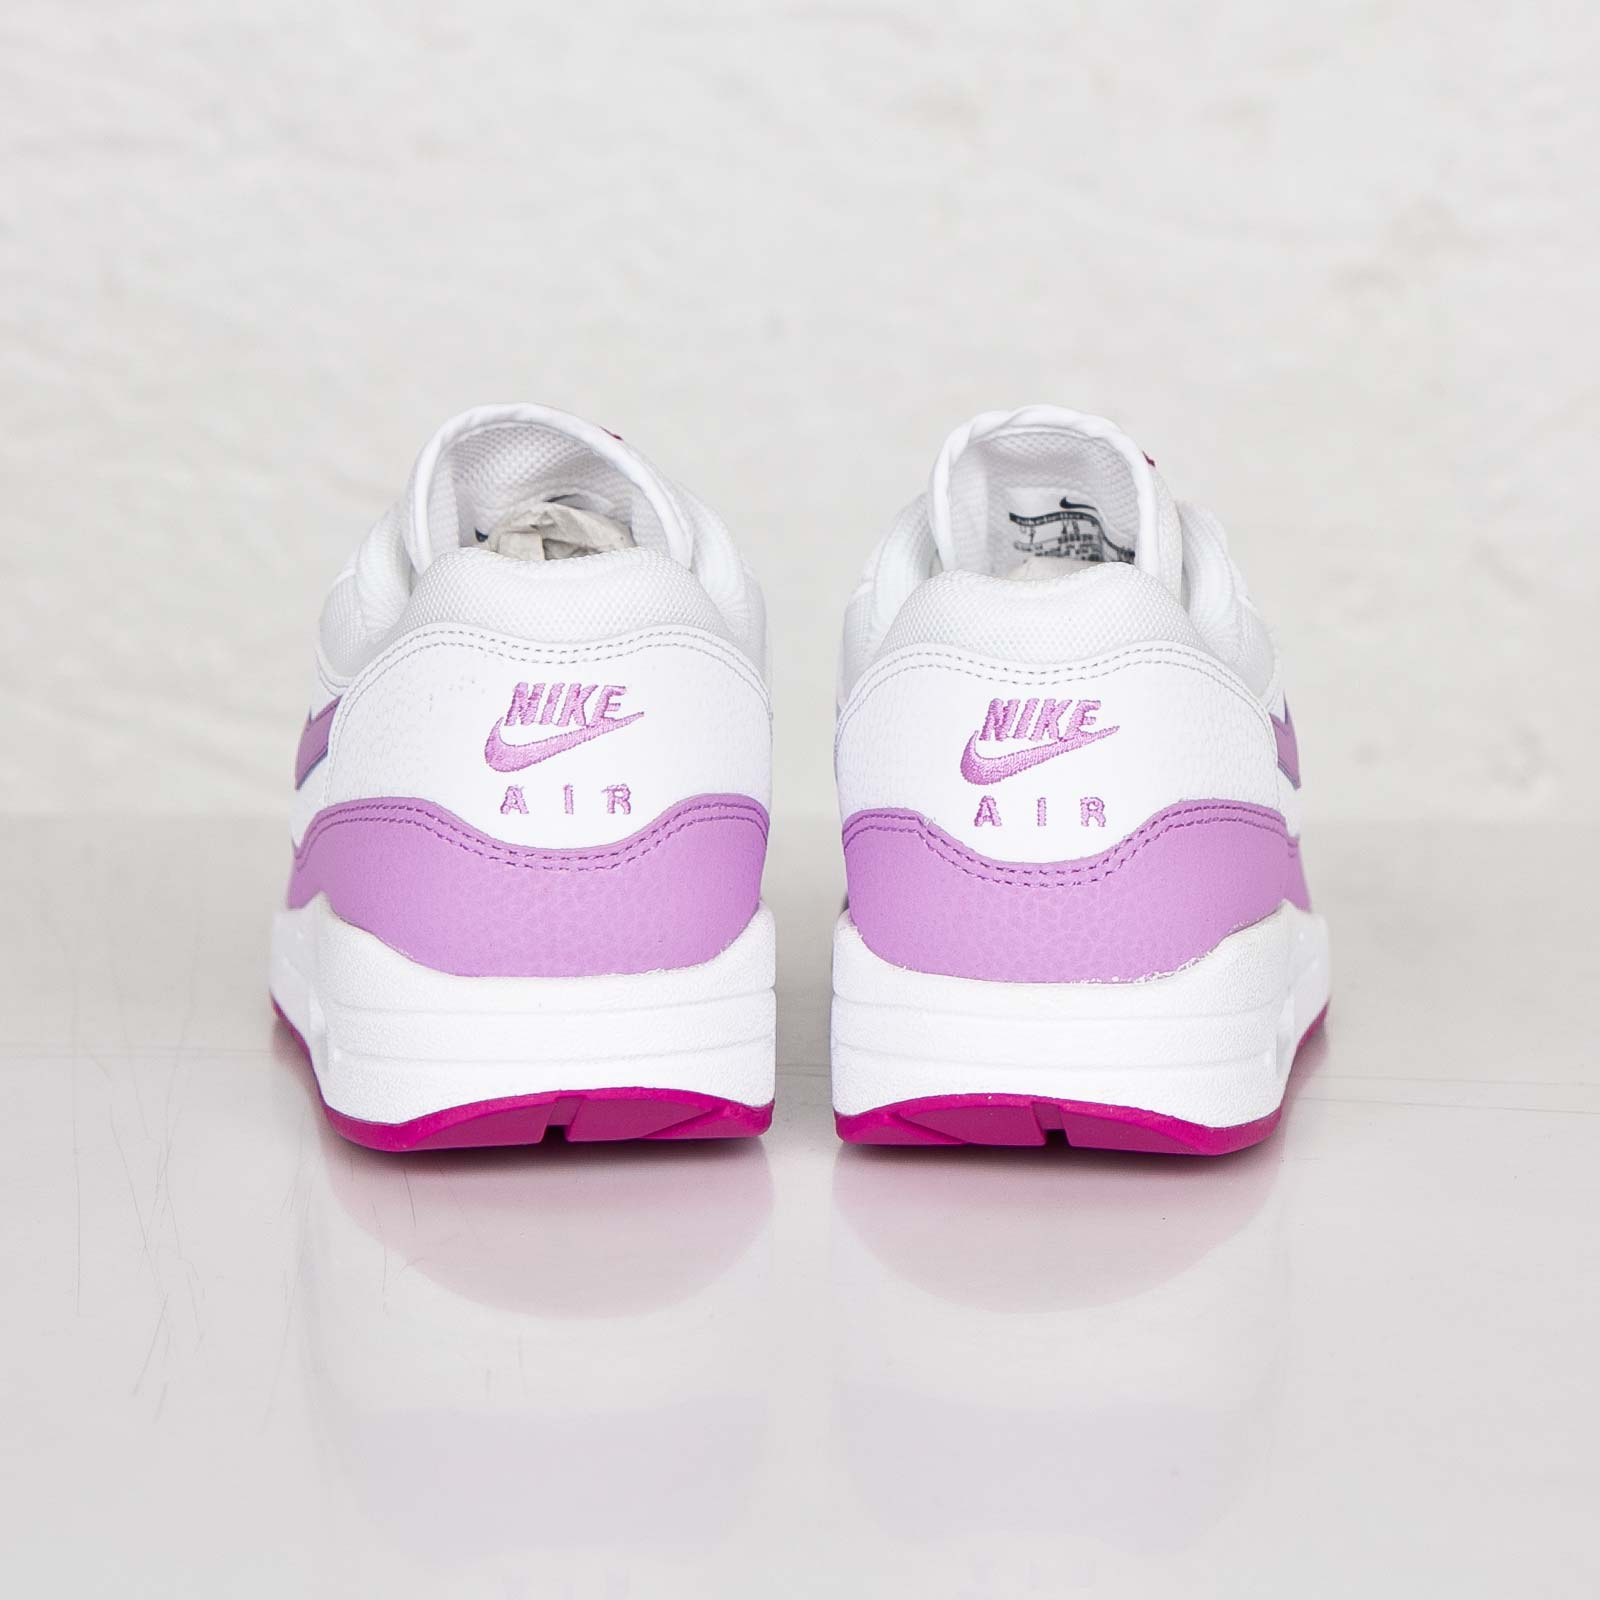 purchase cheap 18528 106ef Nike Wmns Air Max 1 Essential - 599820-116 - Sneakersnstuff   sneakers    streetwear online since 1999